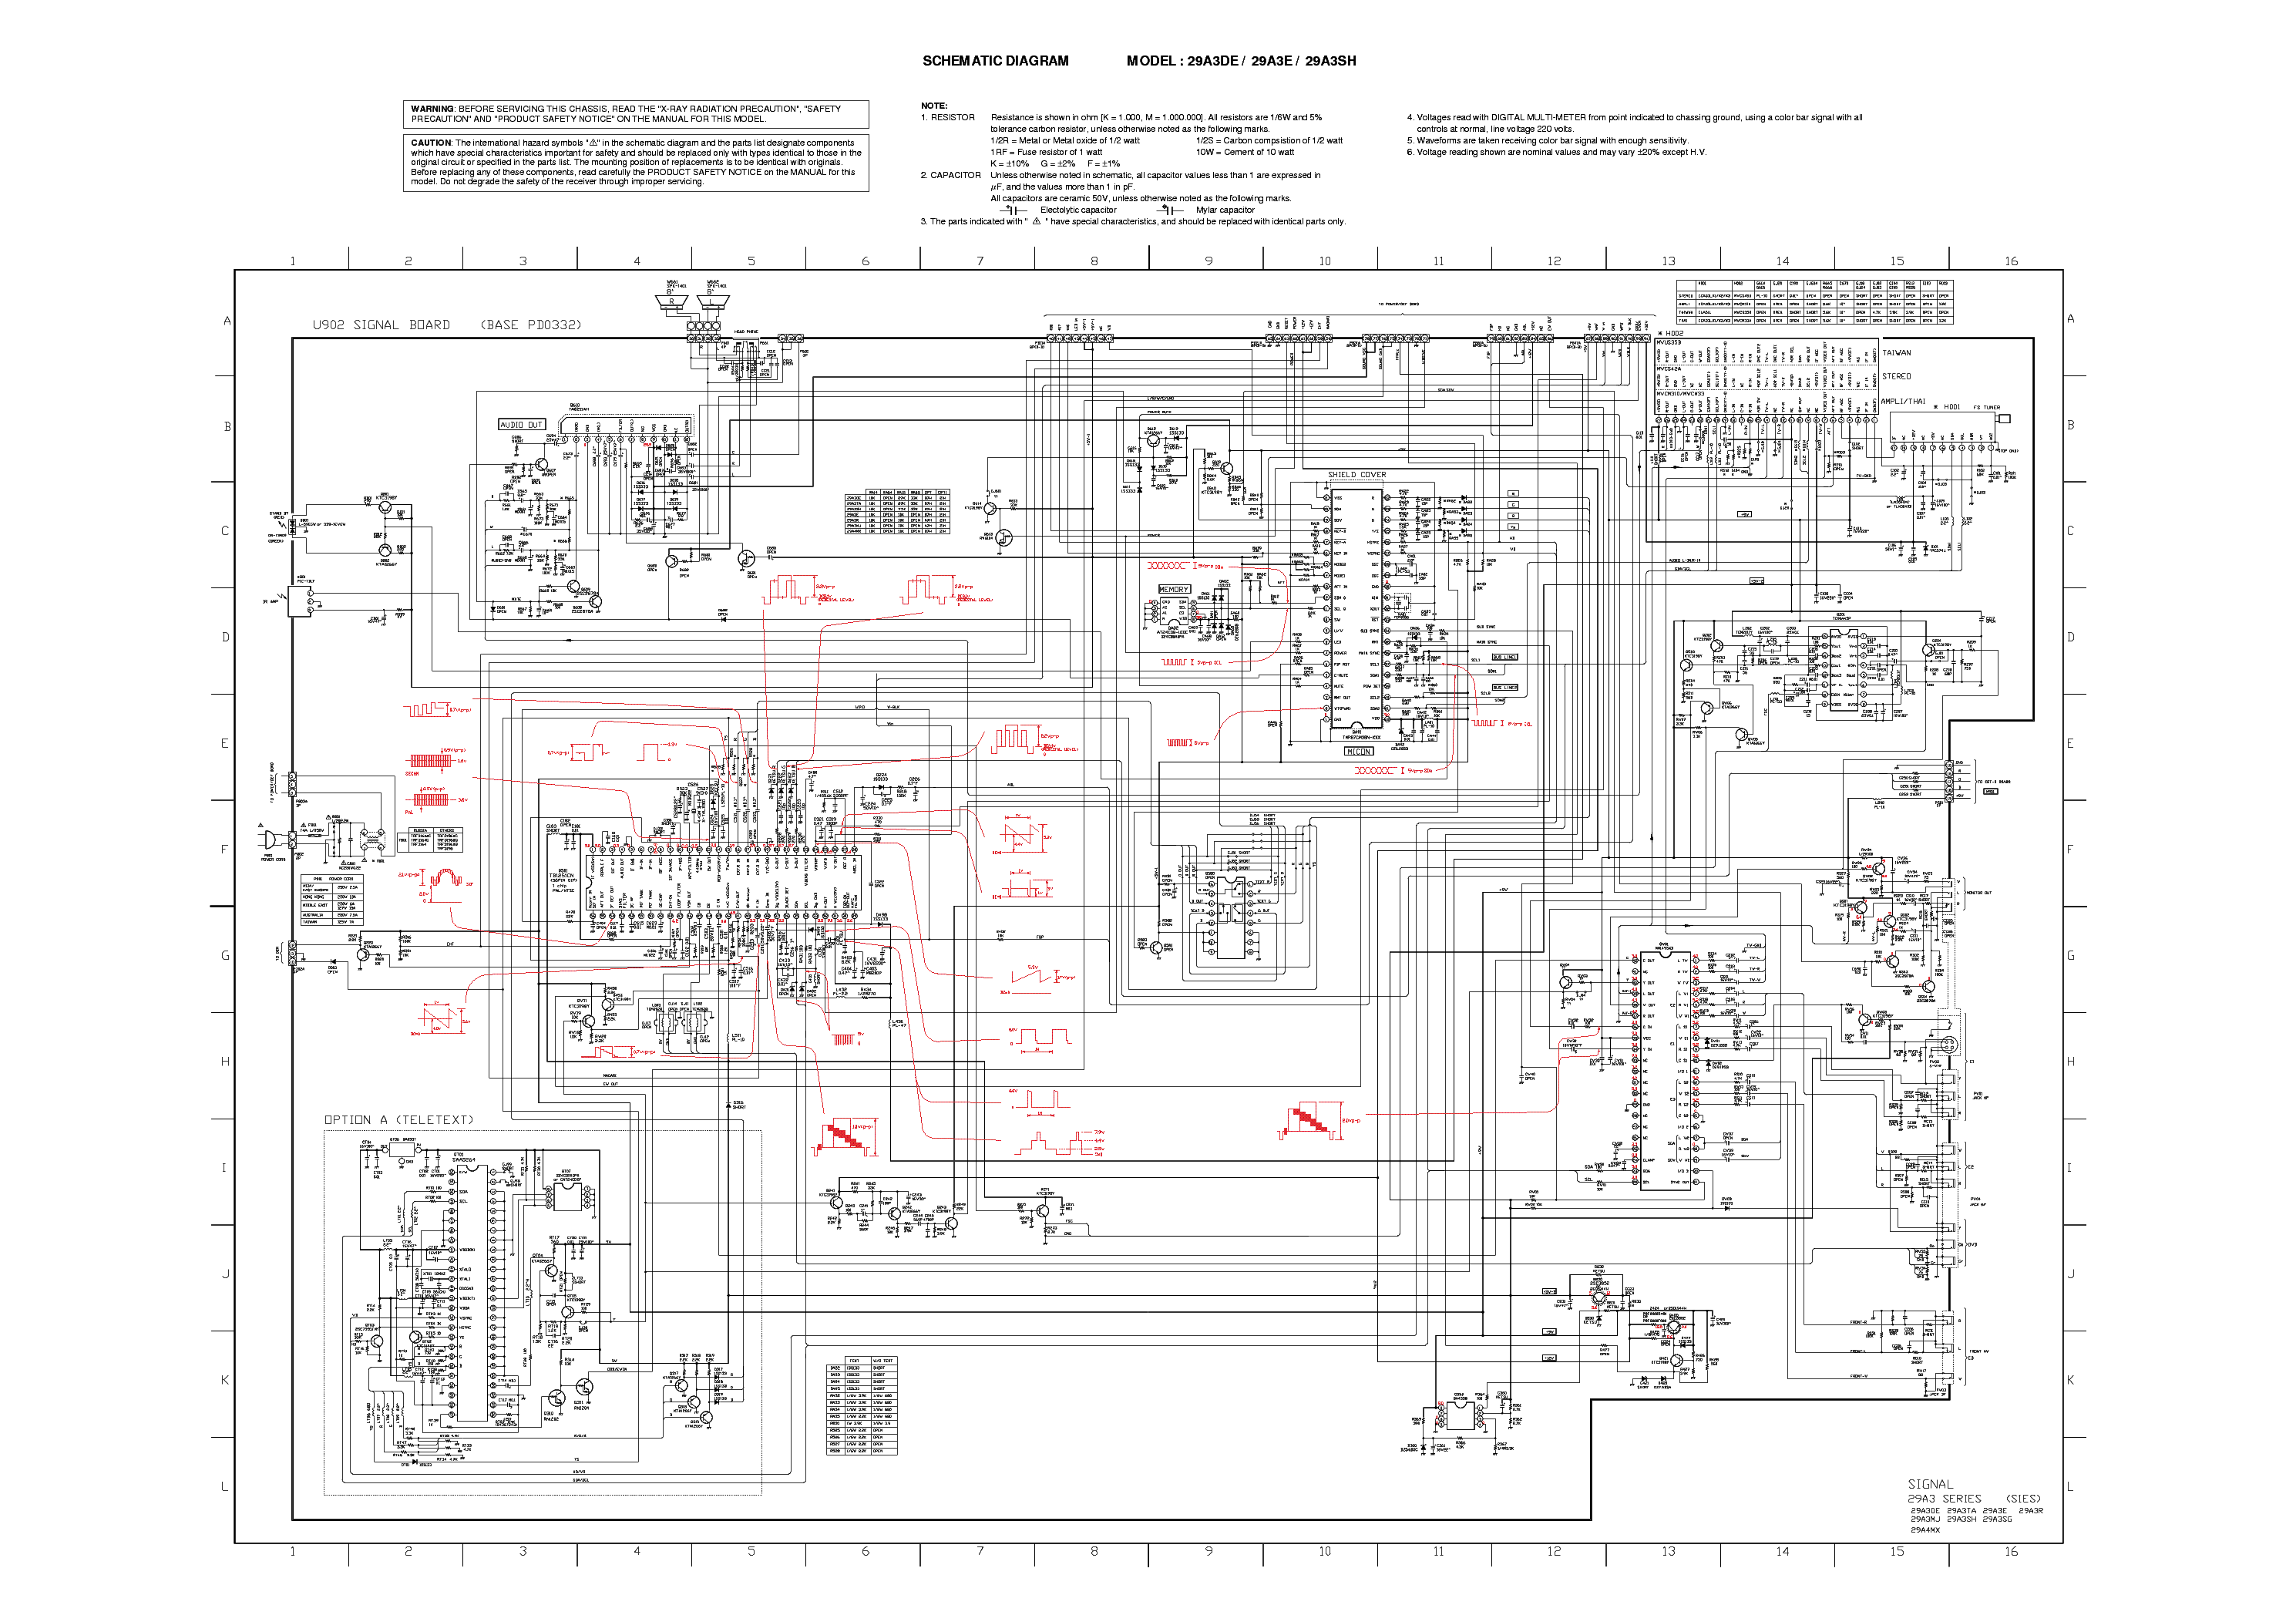 toshiba 40h80 circuit diagram 2 page preview